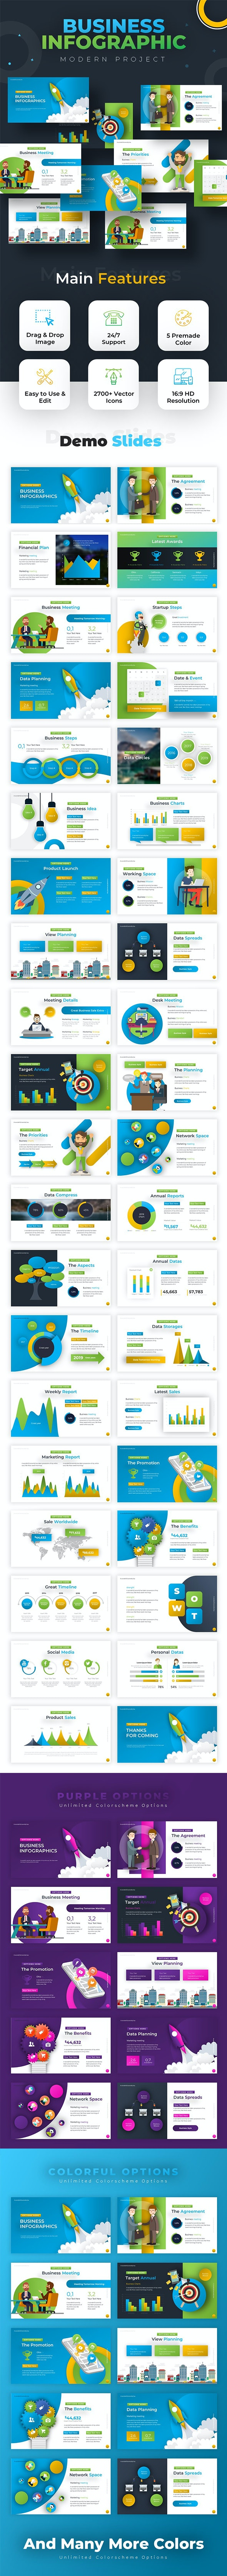 Business Infographic Powerpoint - PowerPoint Templates Presentation Templates